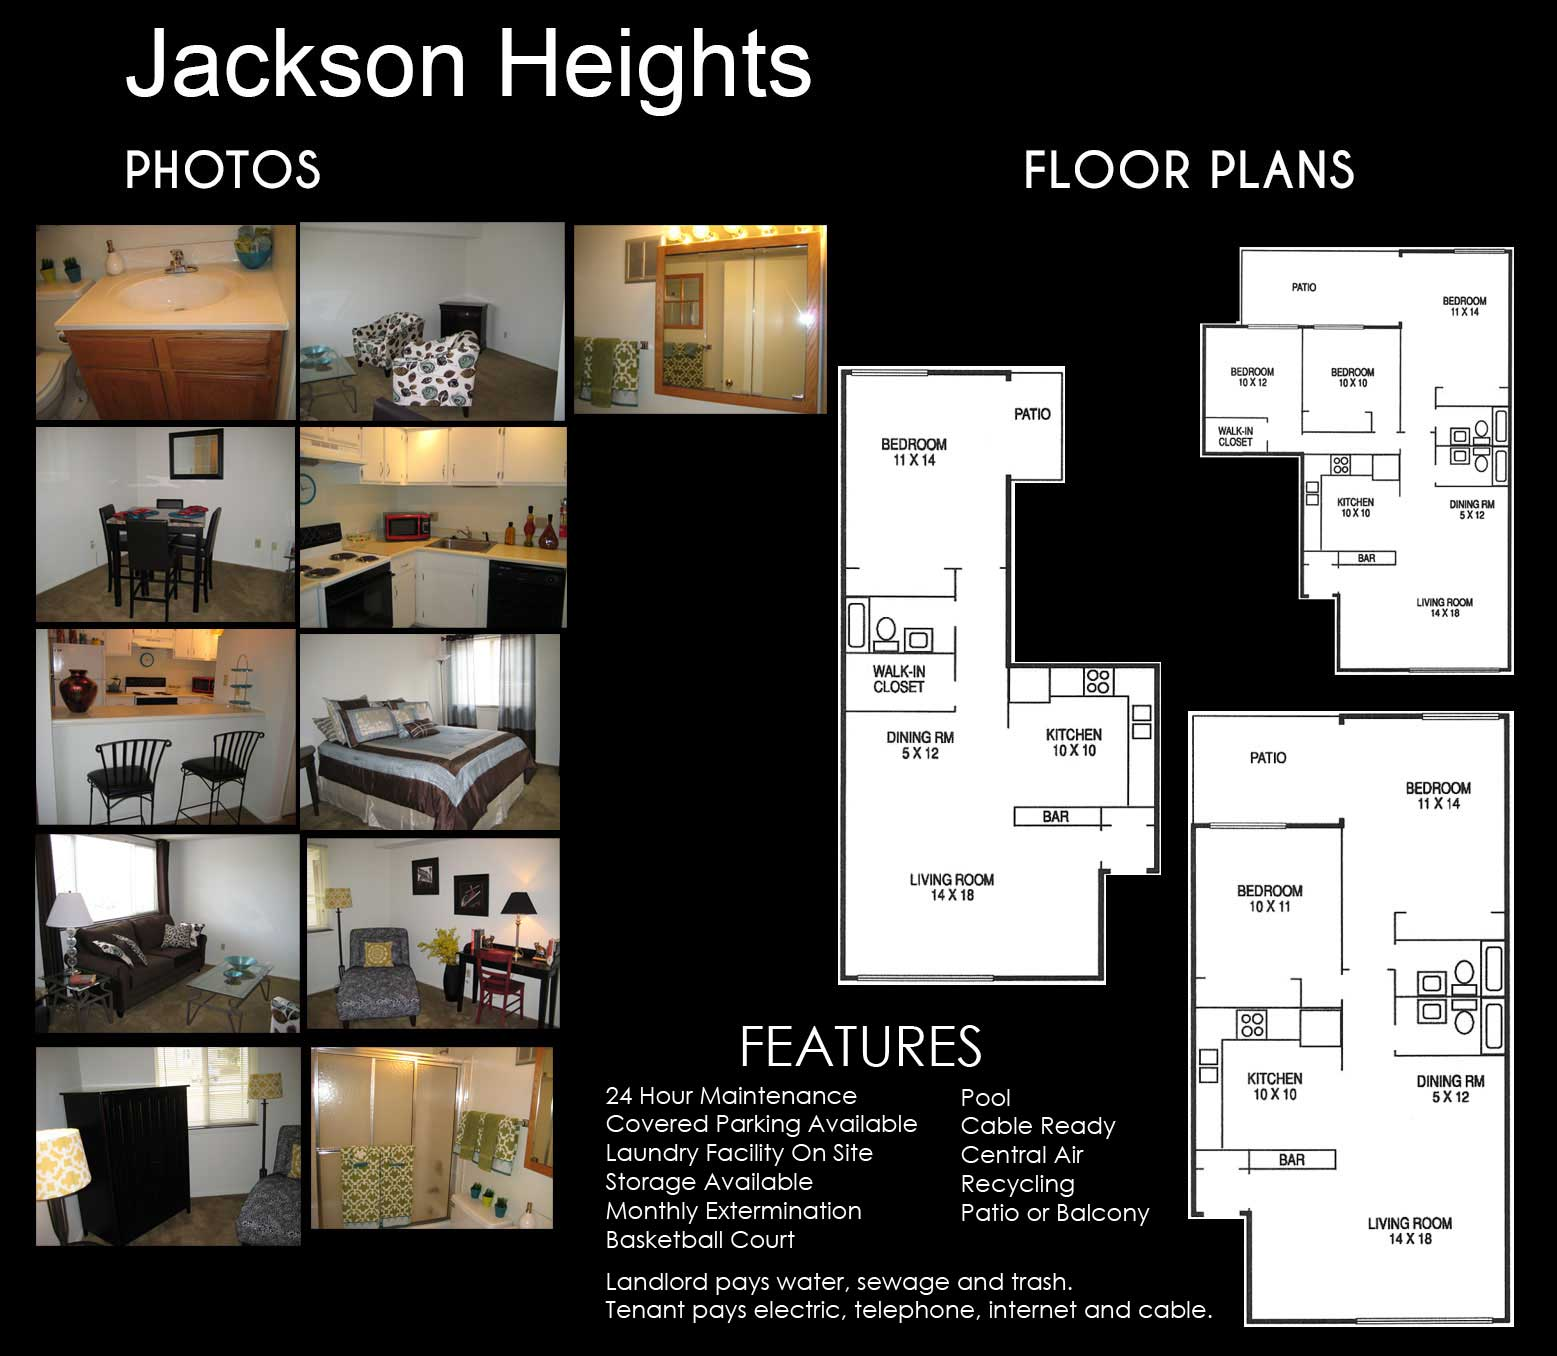 1 Bedroom Apartment  620 2 Bedroom Apartment  670 3 Bedroom Apartment  775. Woodington Management LLC   Bloomington  IN